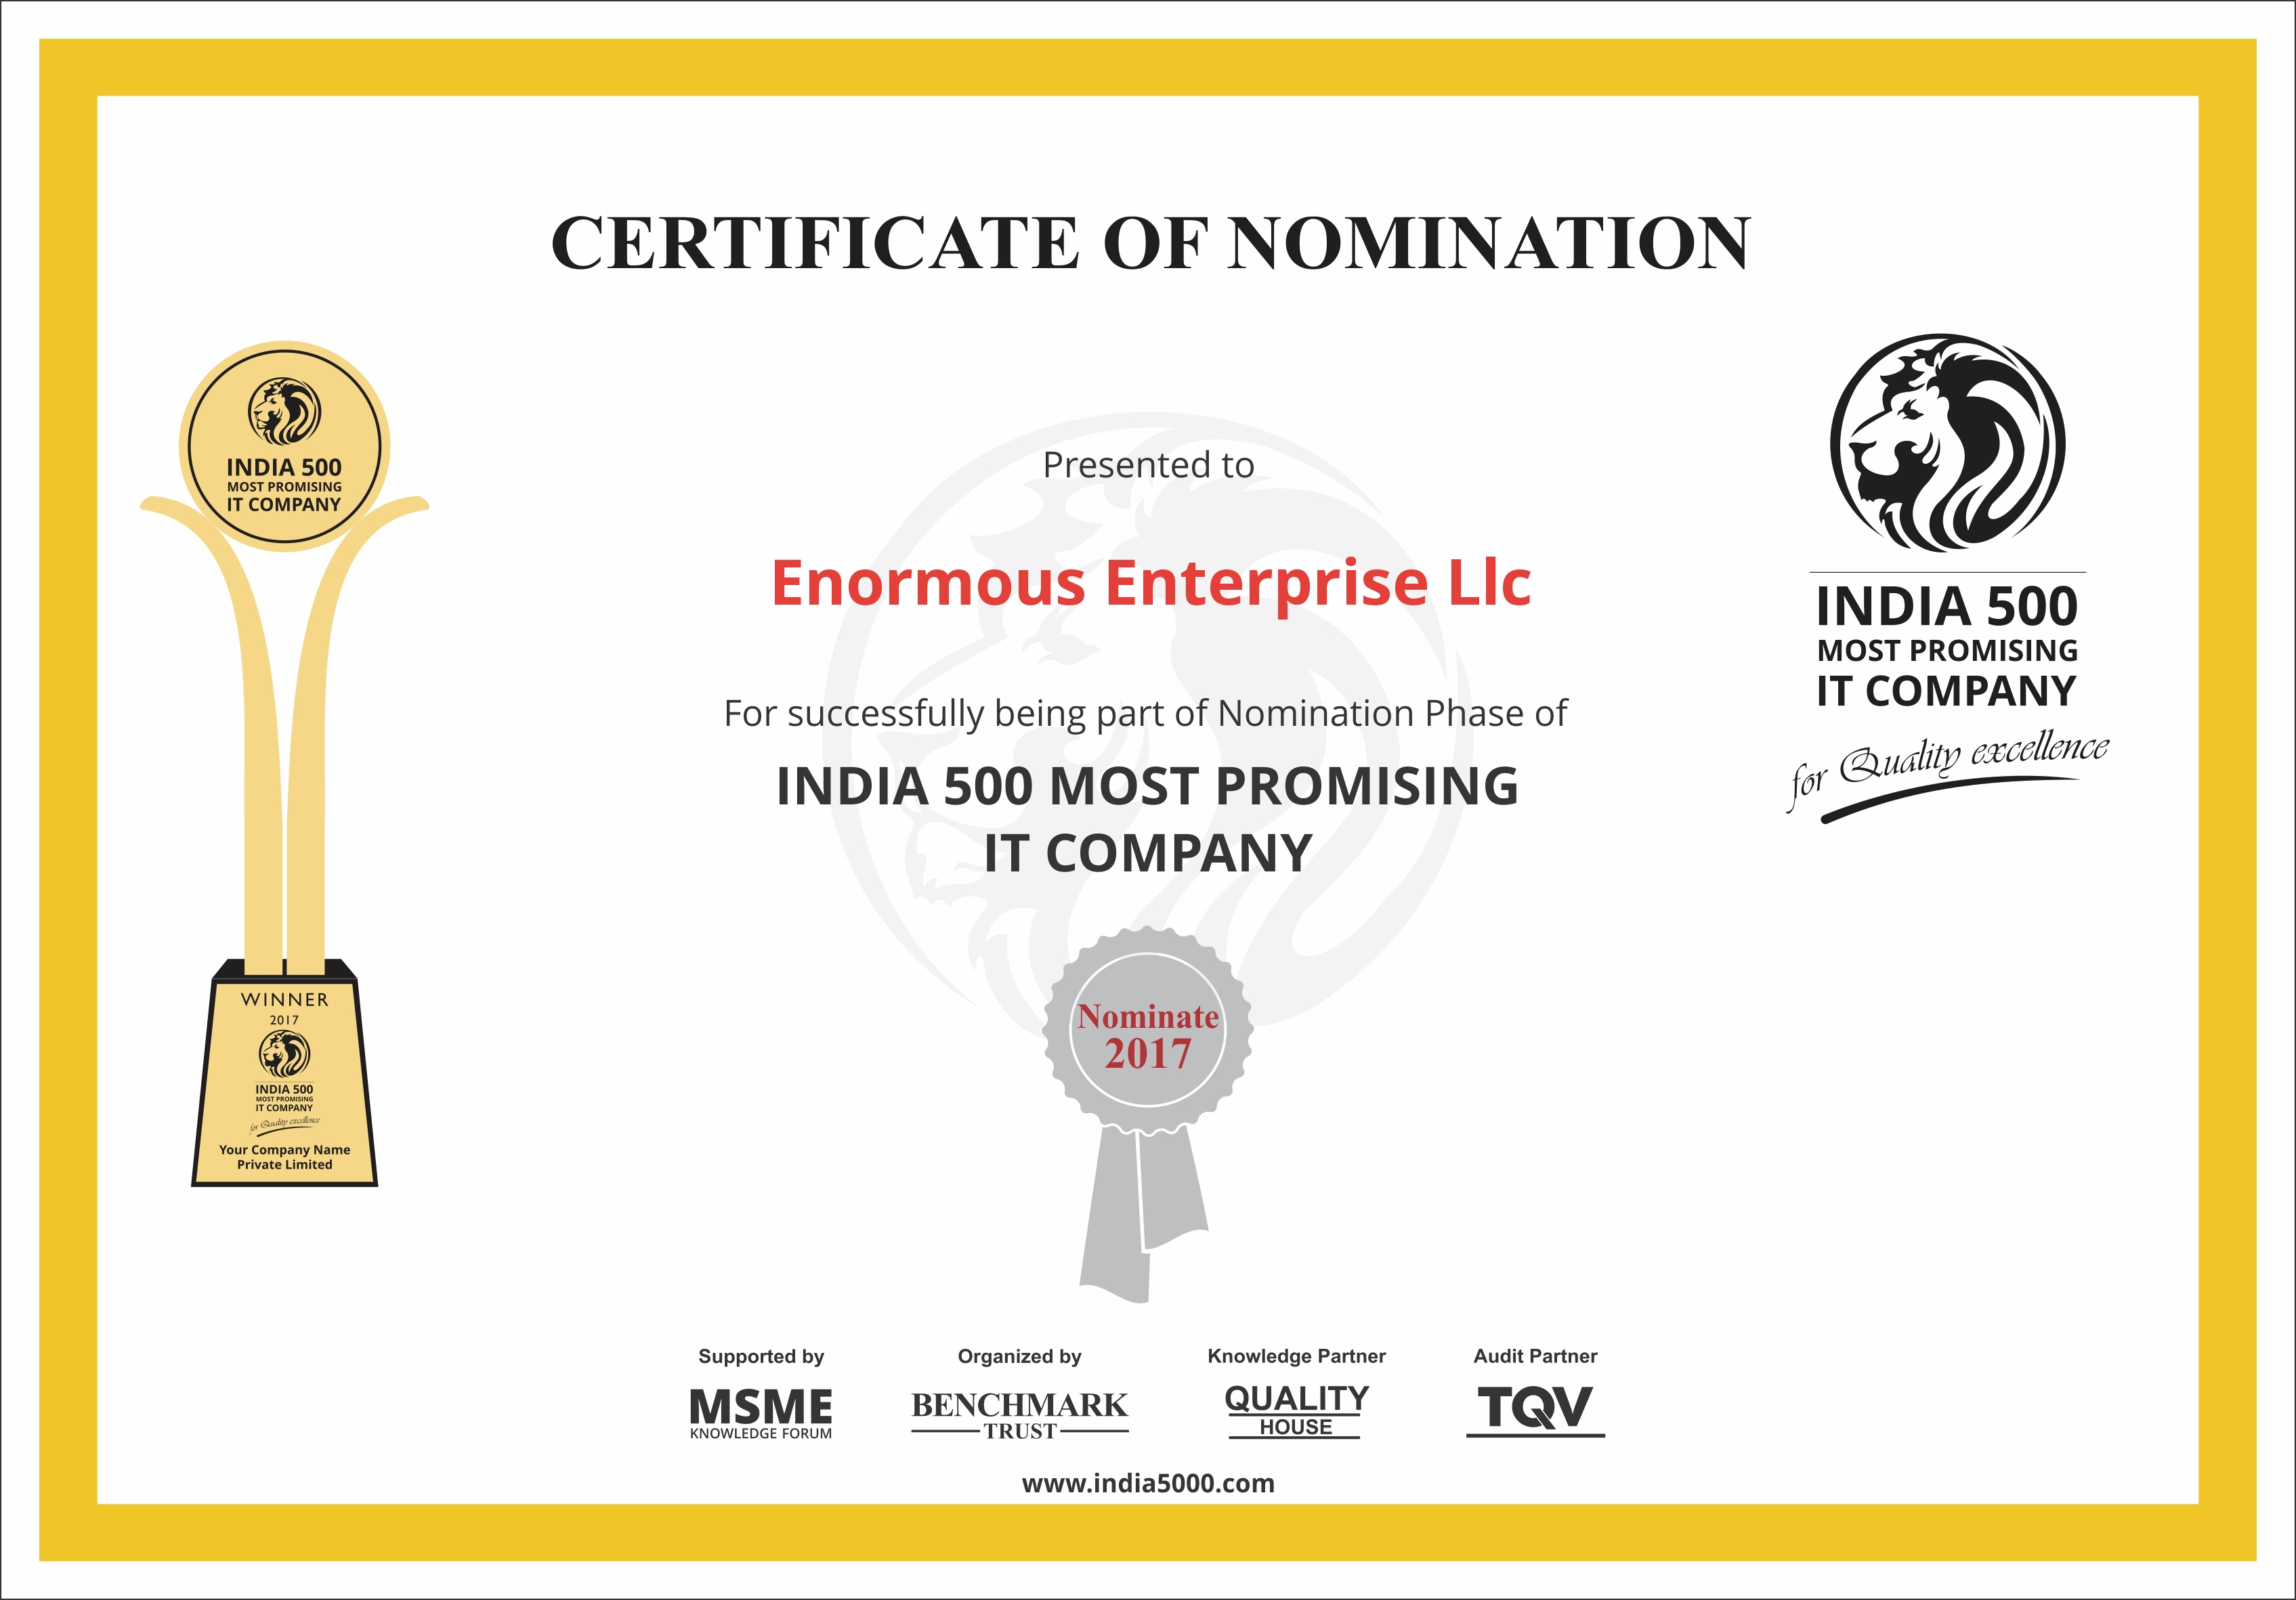 Enormous Enterprise LLC is nominated to India's 500 Most Promising Information Technology company.